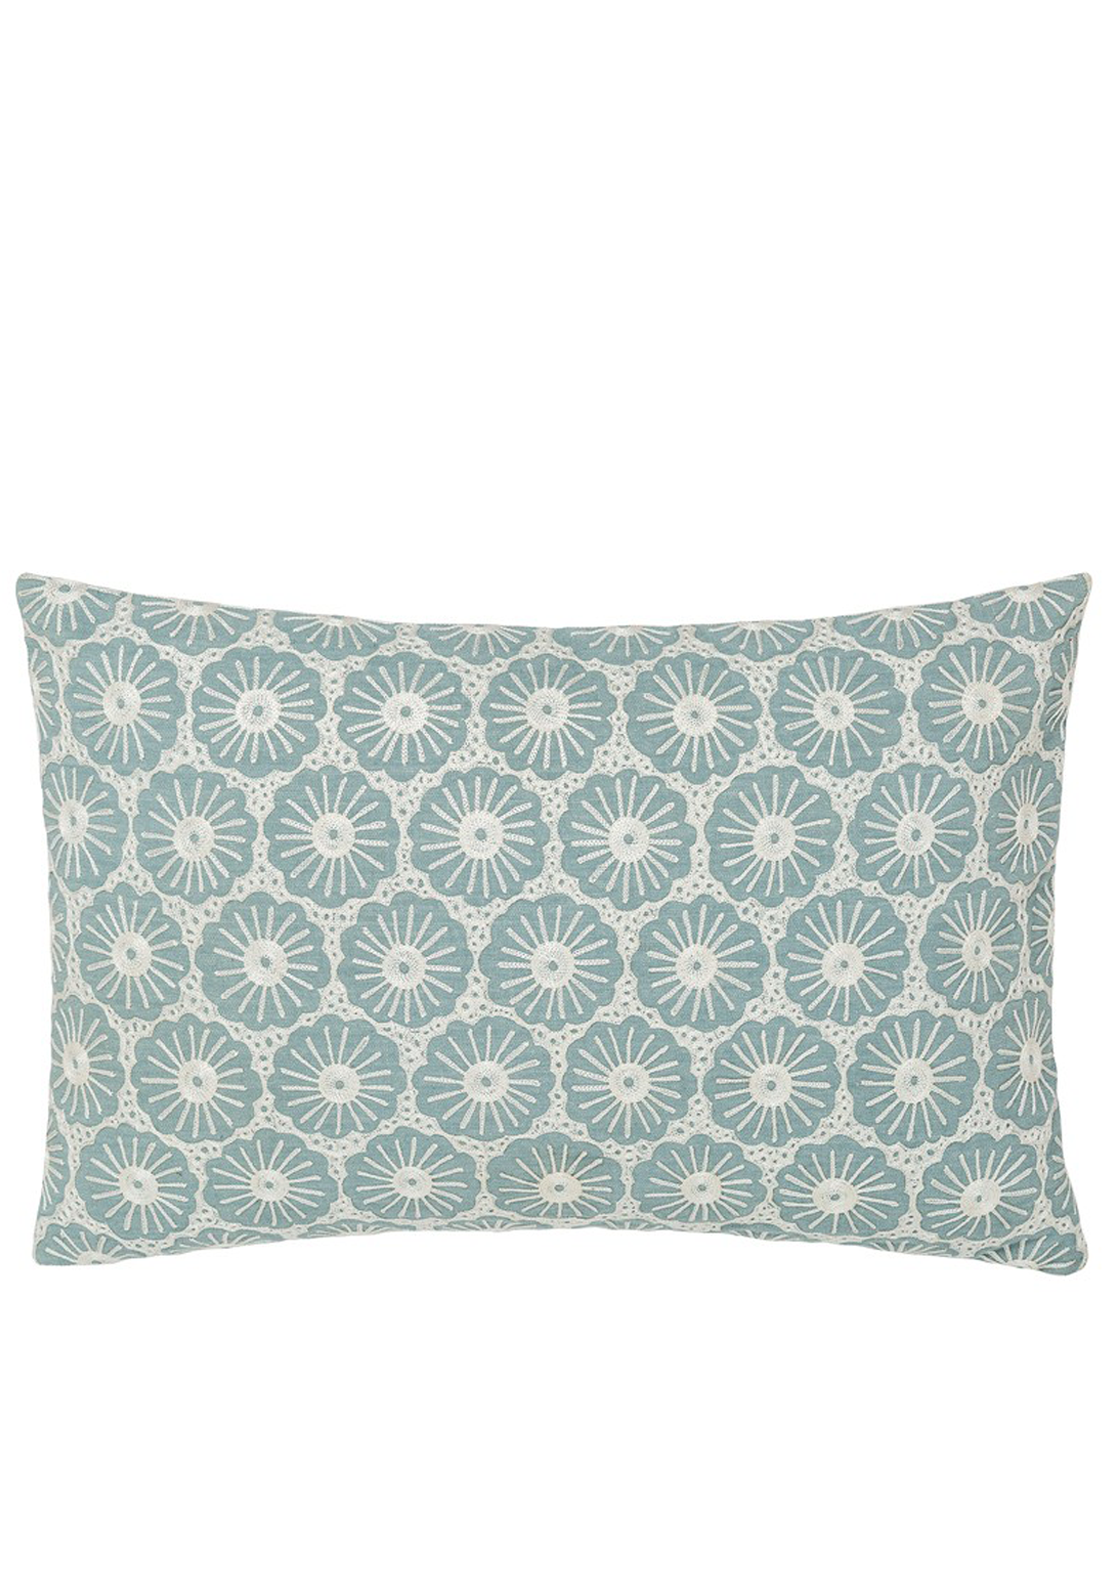 Fable Olivia Cushion, 45 x 30cm Duckegg